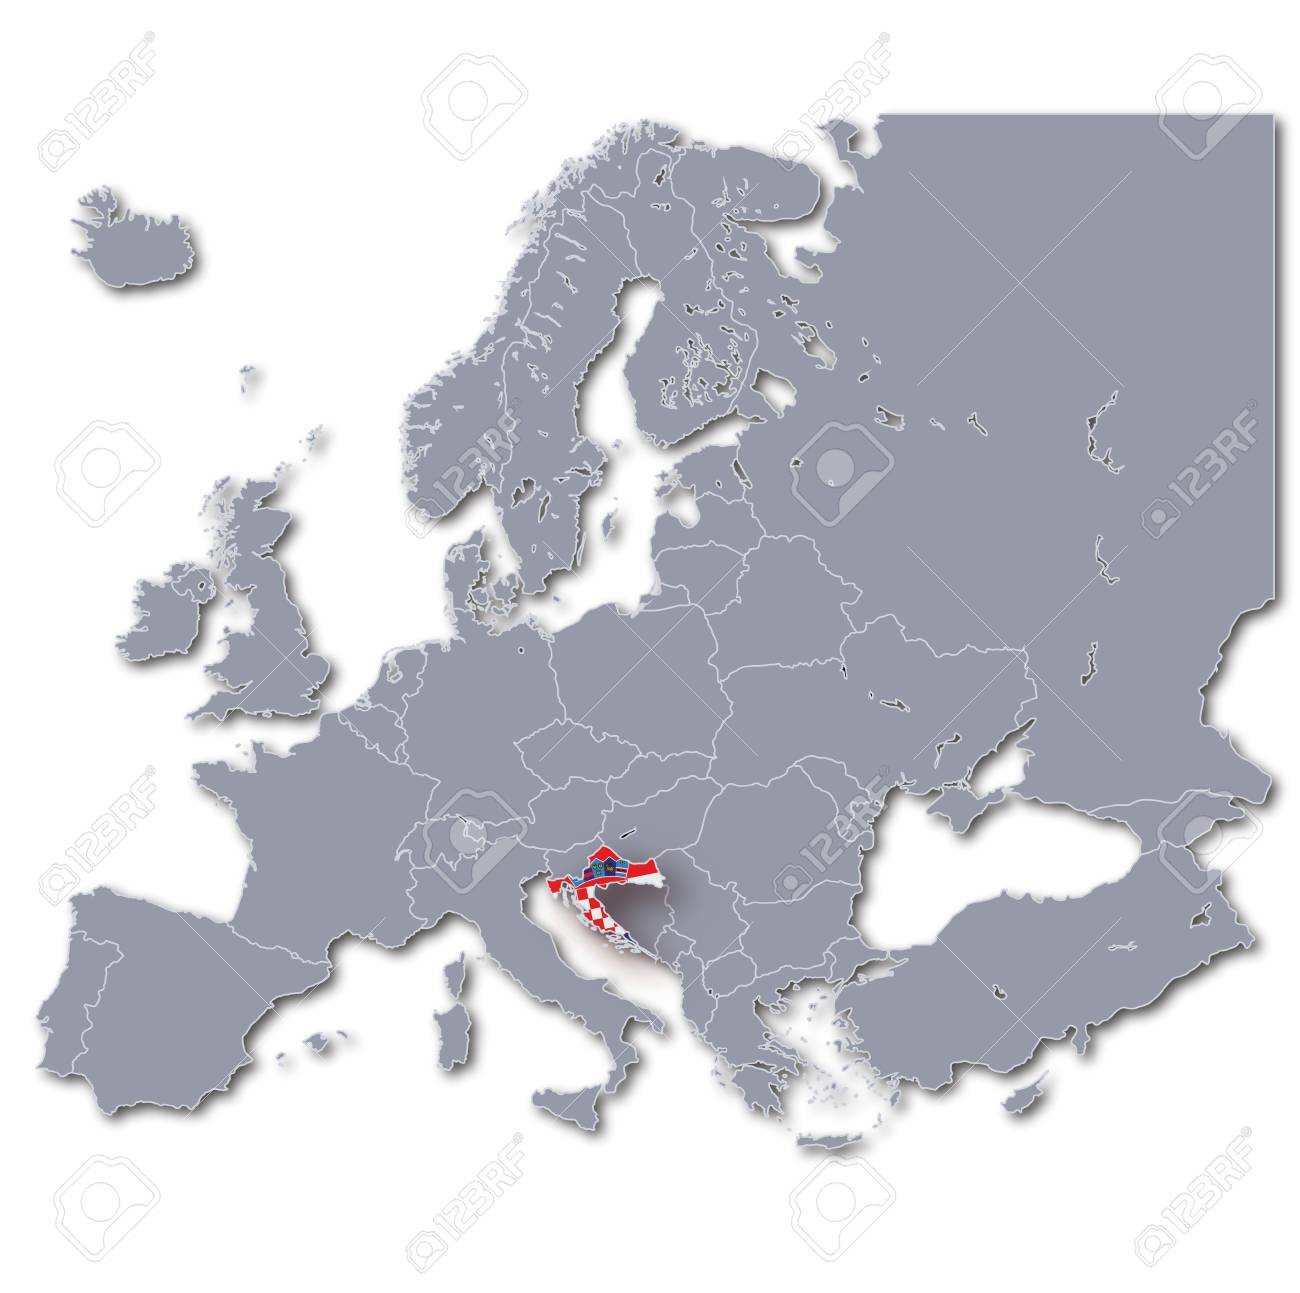 Europe Map Croatia Stock Photo Picture And Royalty Free Image